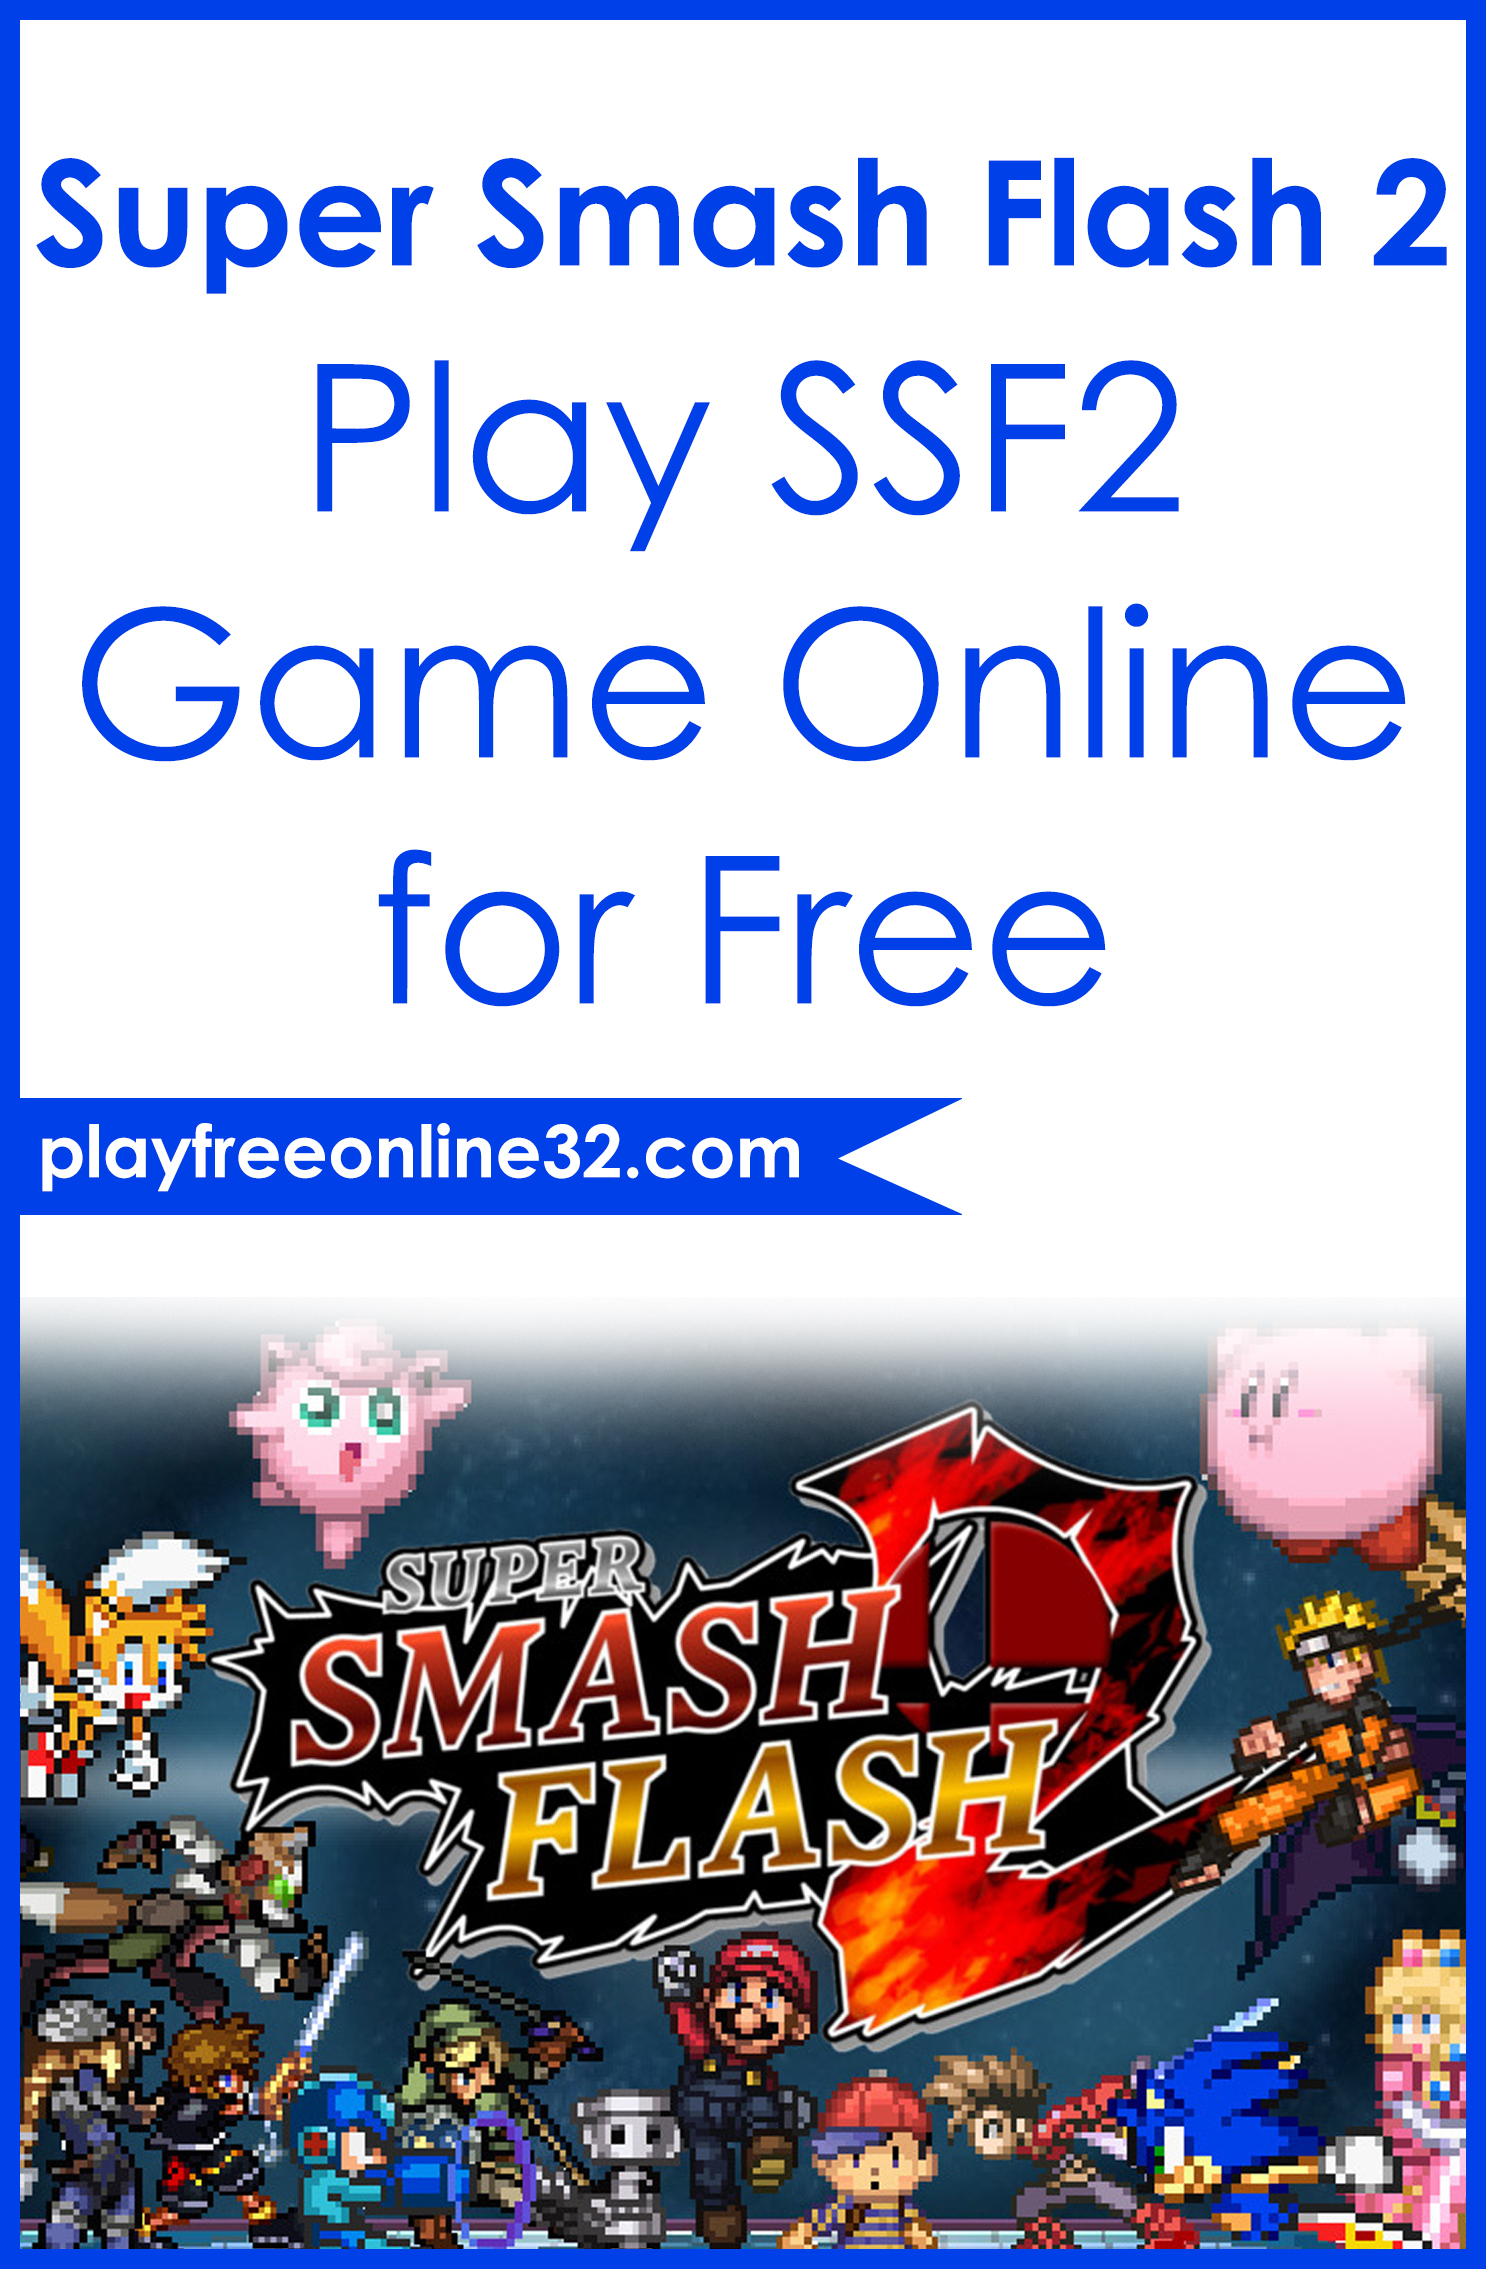 Super Smash Flash 2 • Play SSF2 Game Online for Free Pinterest